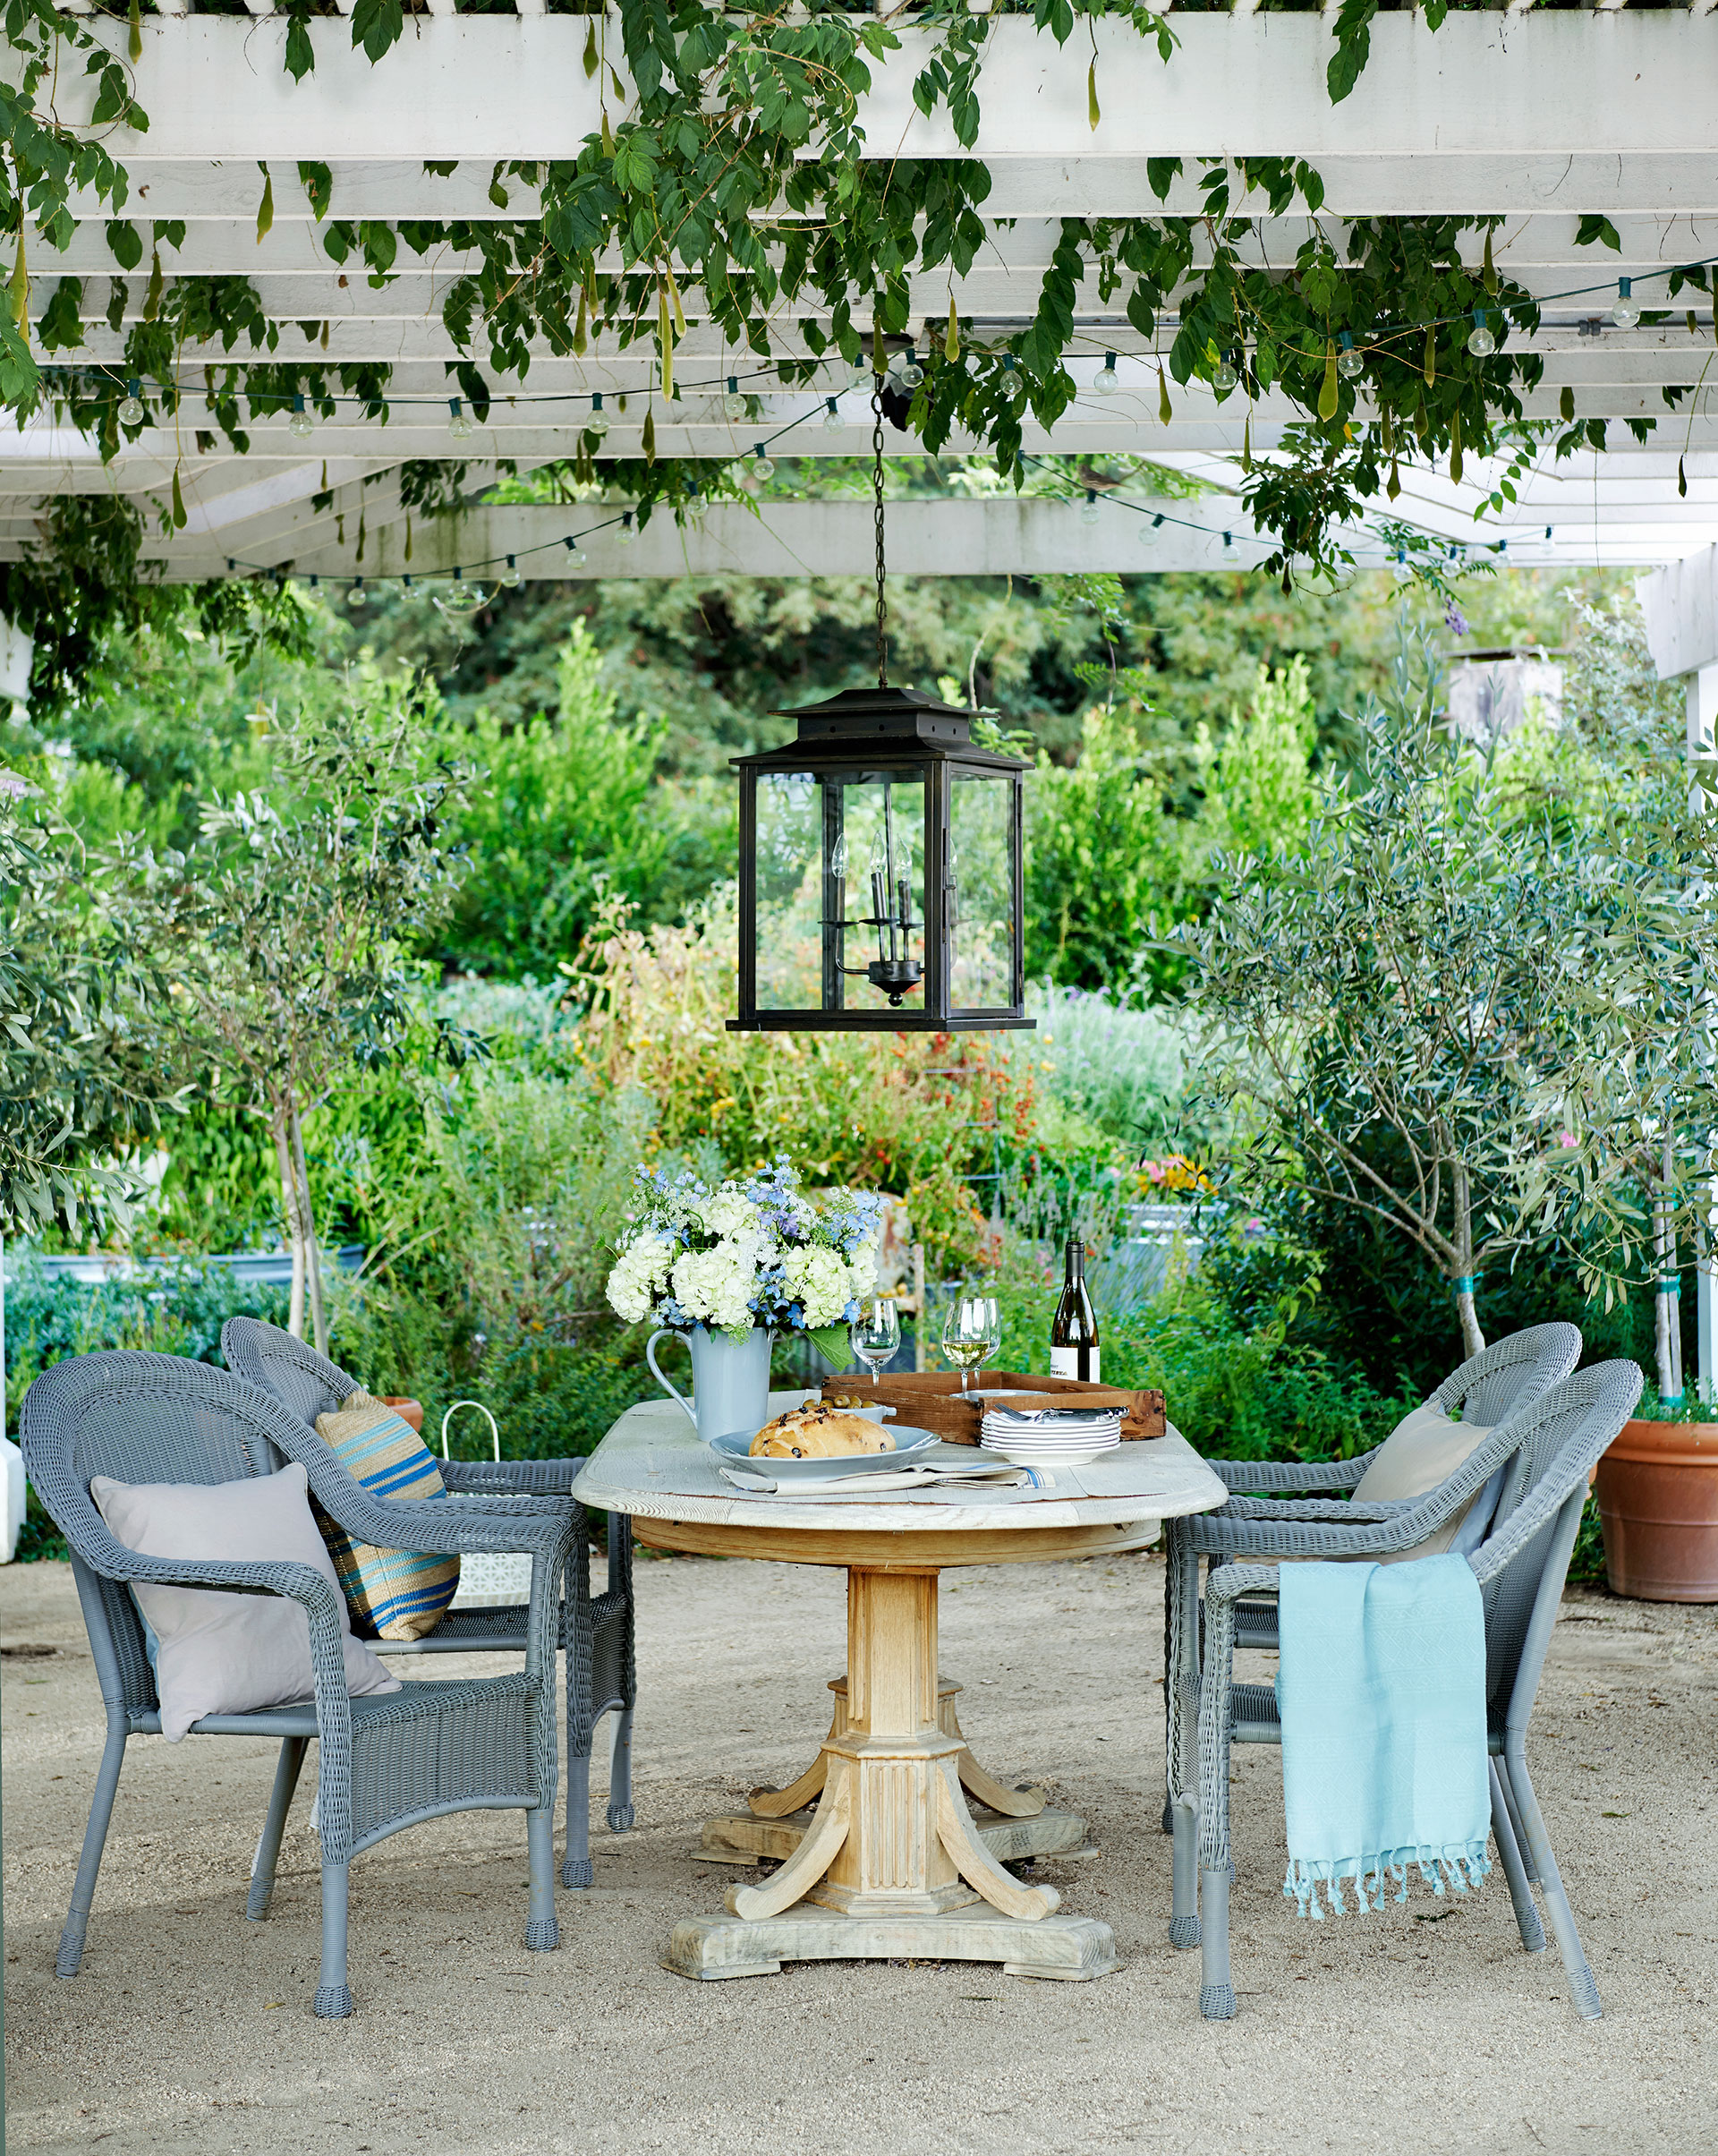 jann blazona california garden - farmhouse decorating and garden ideas